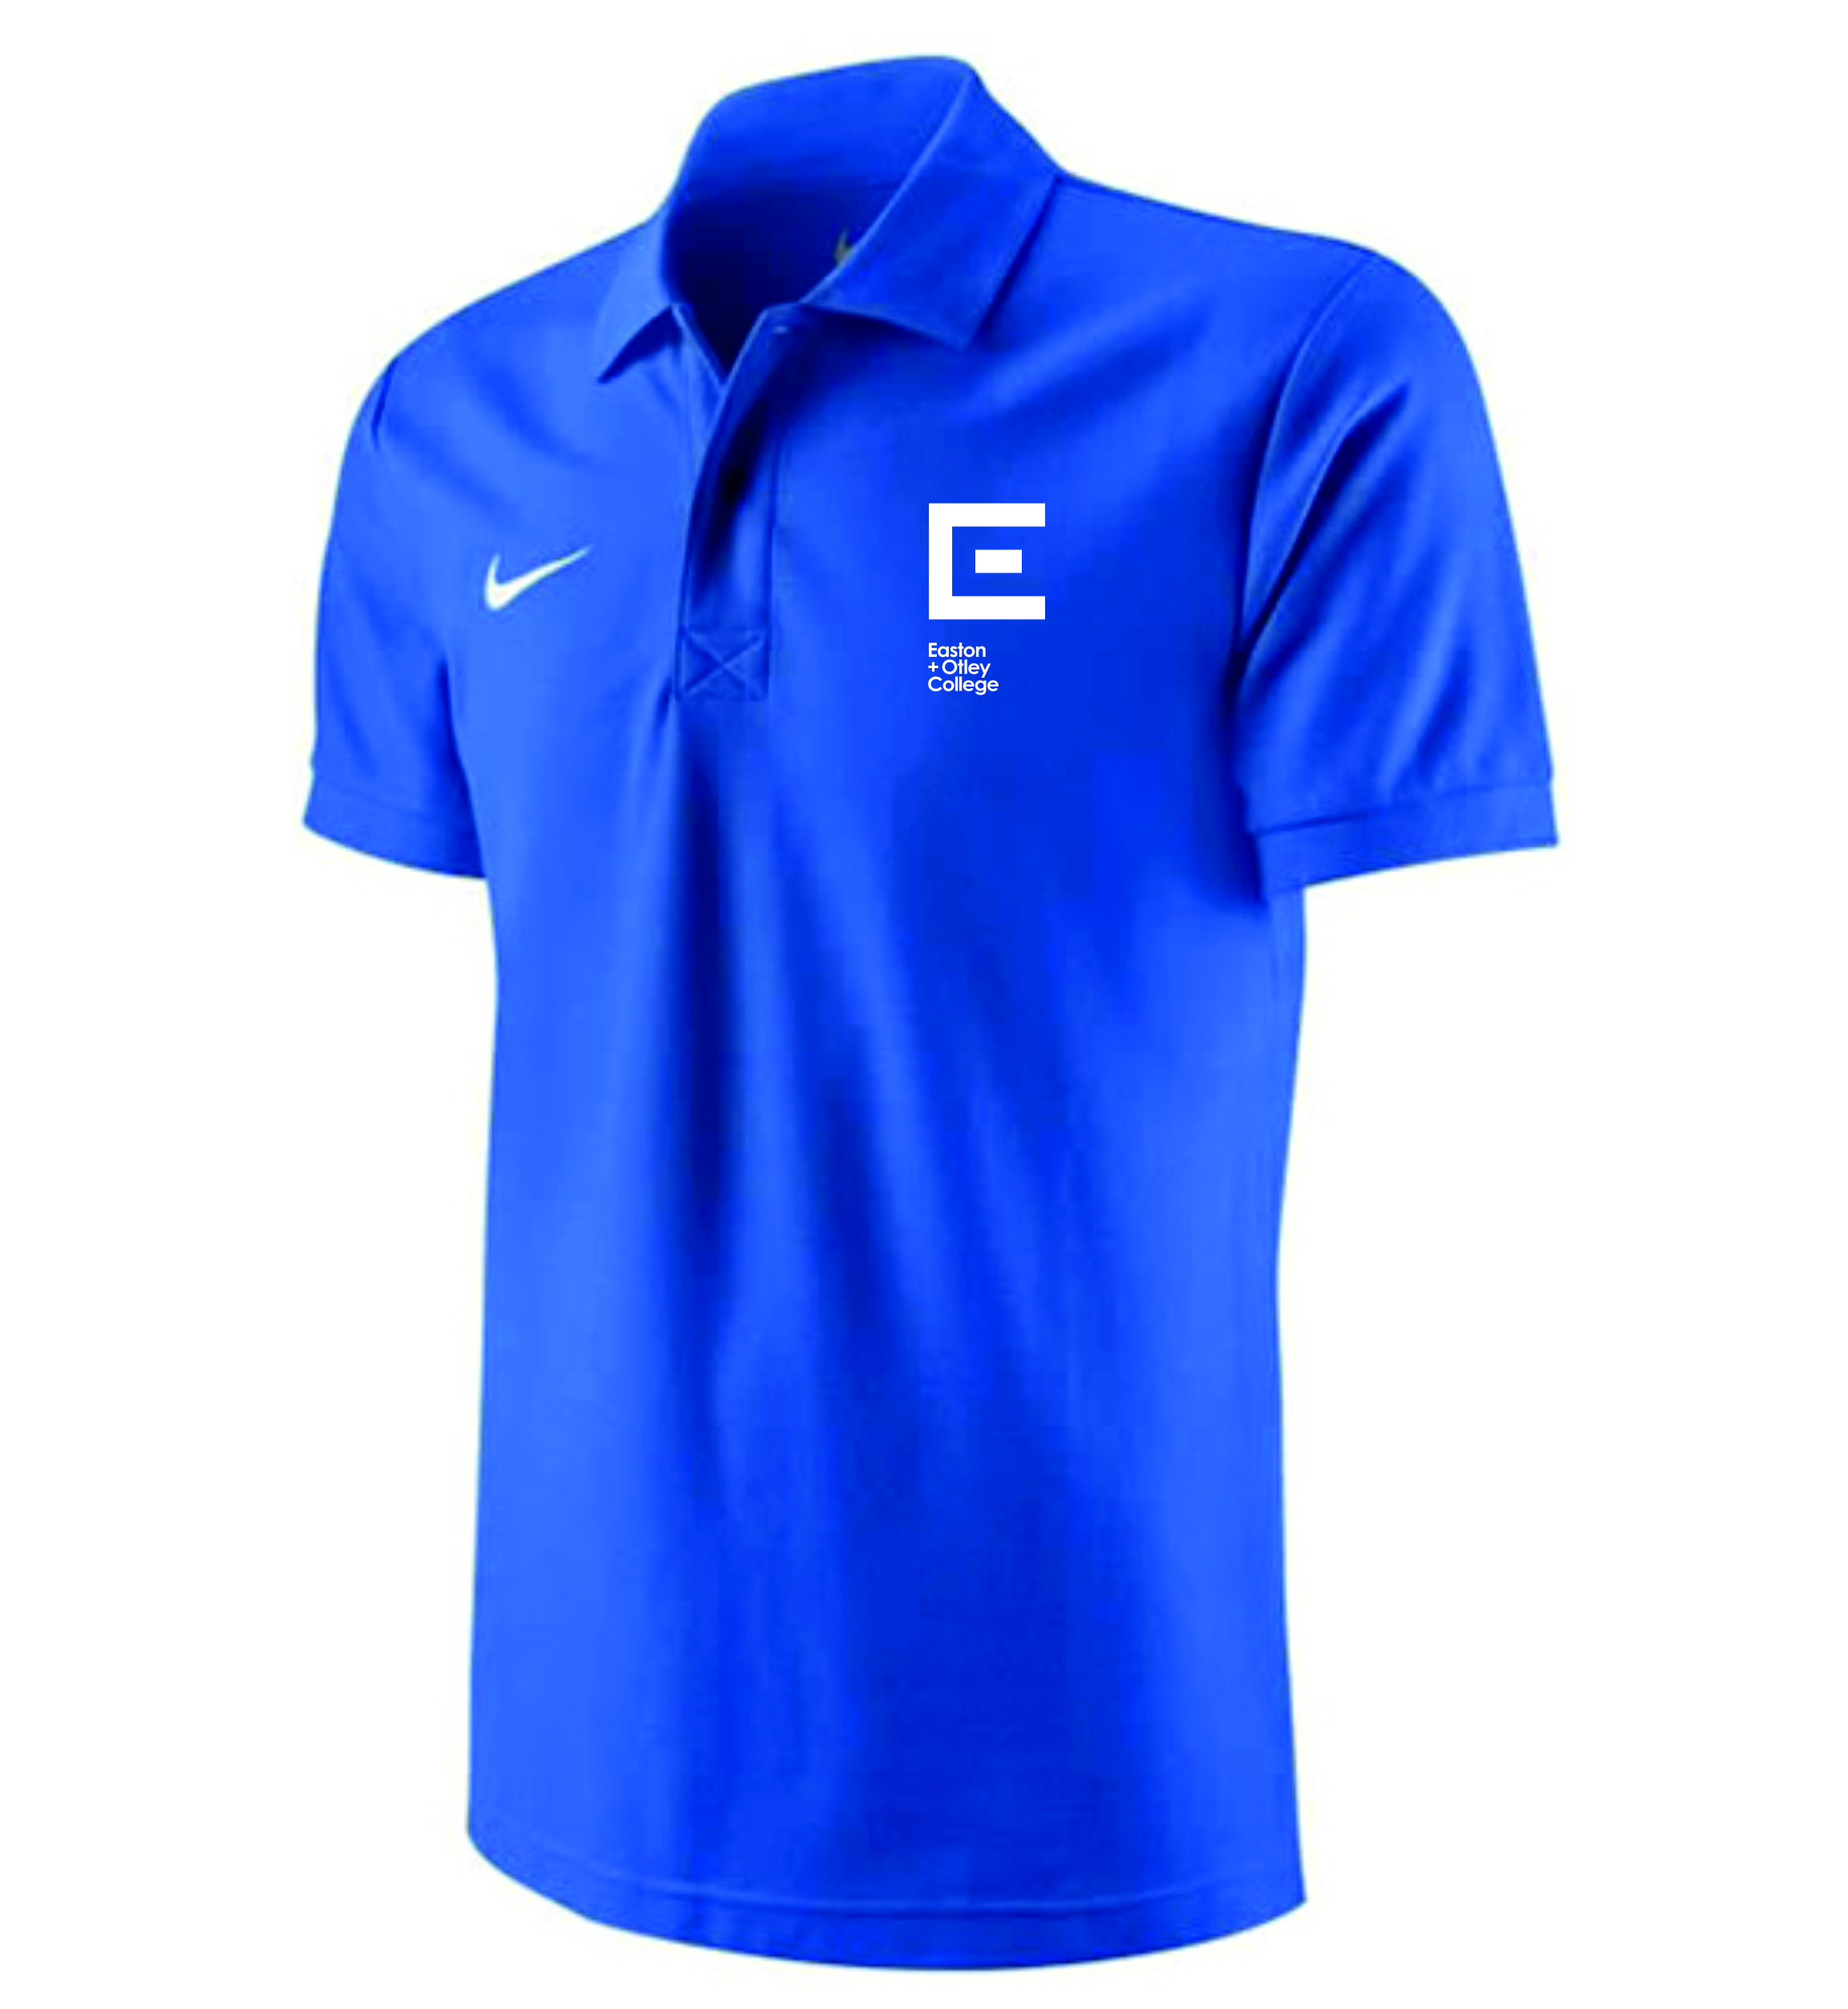 Easton Nike Polo